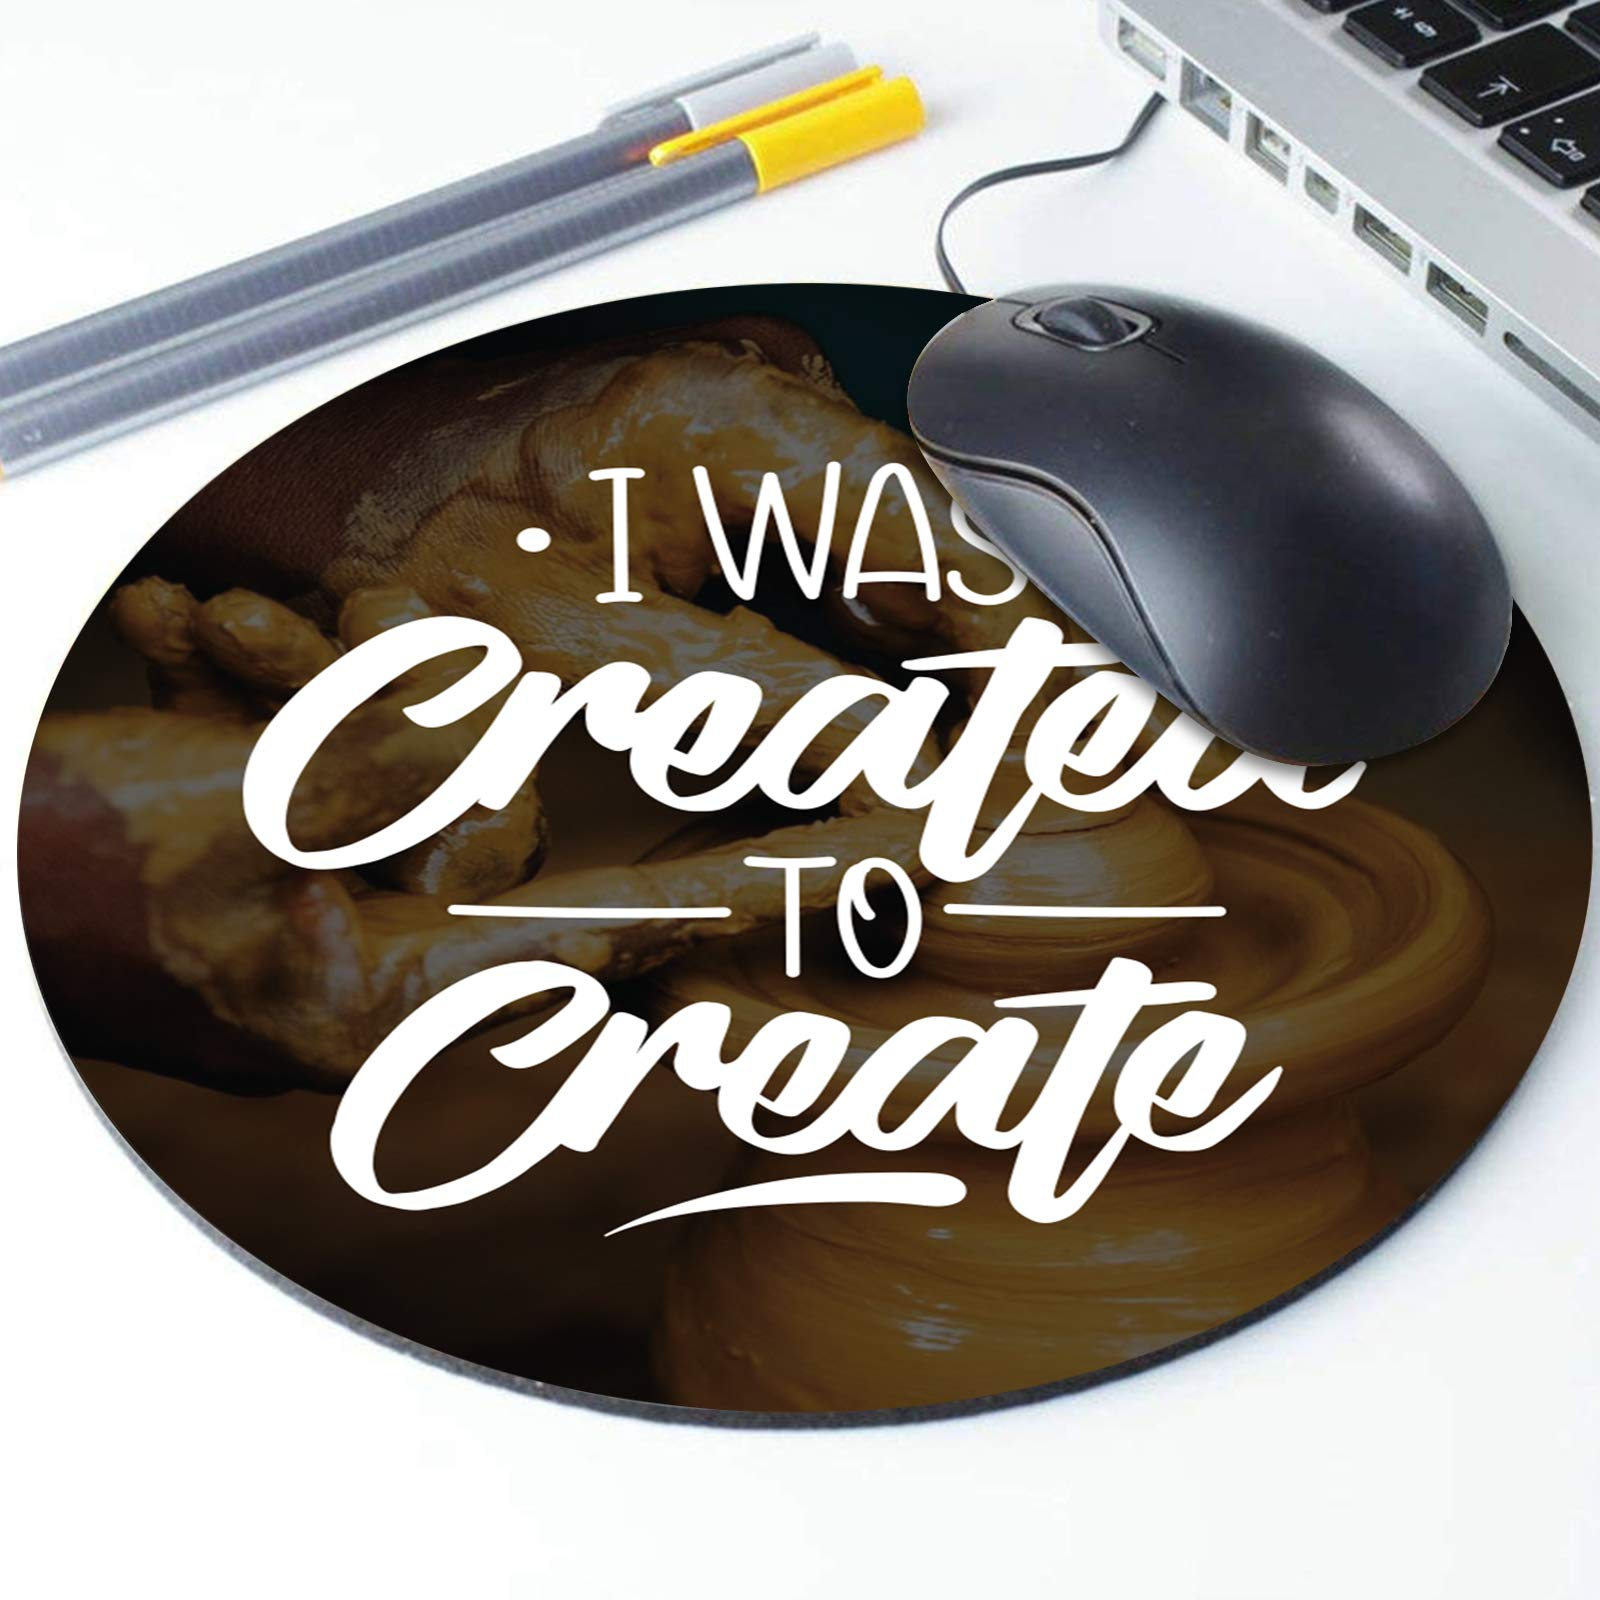 I was Created to Create Mouse Pad, Inspirational Motivational Quote Round Ergonomic Mouse Pad Non-Slip Rubber Material for Office Desk Gaming Home Space Decor - 220mm Diameter